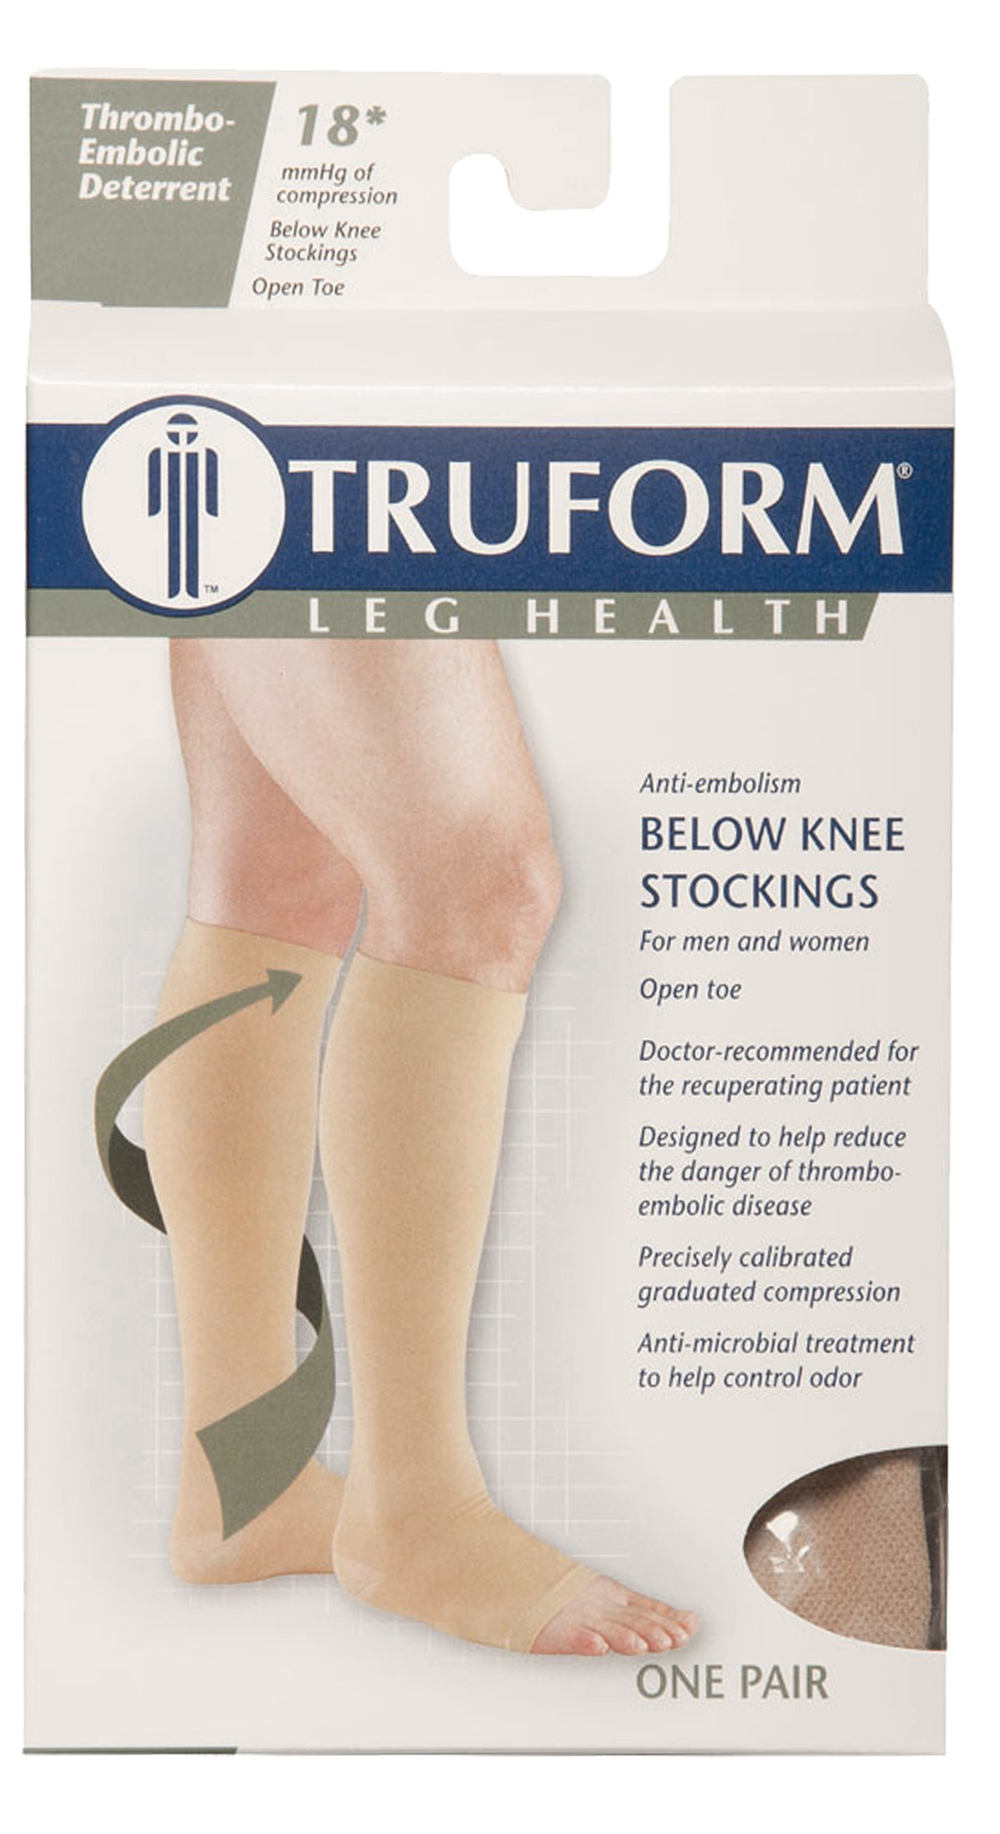 Truform, 0808, 18 mmHg, Anti-Embolism, Open Toe, Knee High, Stockings, Package